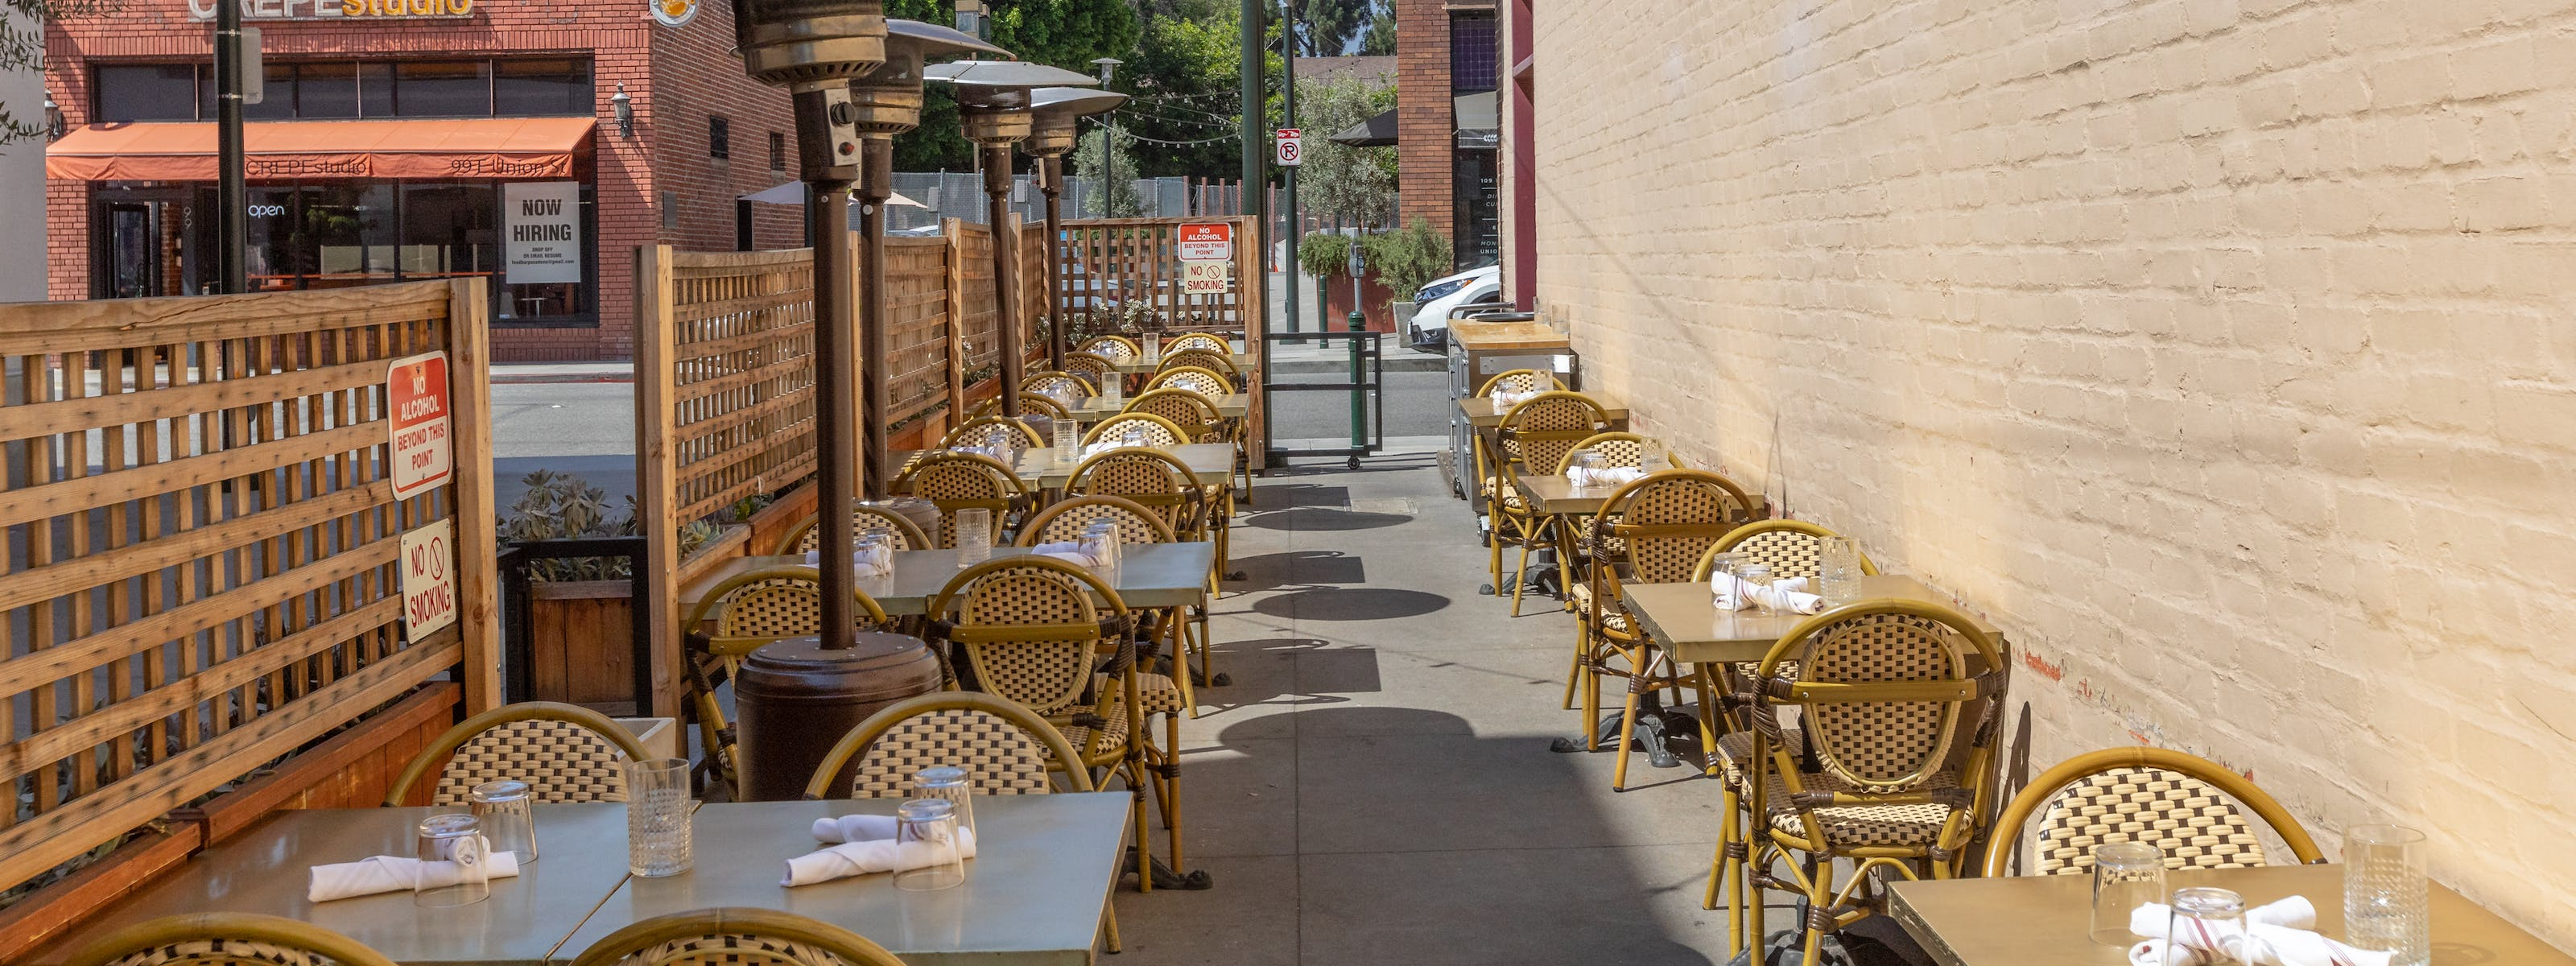 Where To Eat Outside In Pasadena - Pasadena - Los Angeles - The Infatuation